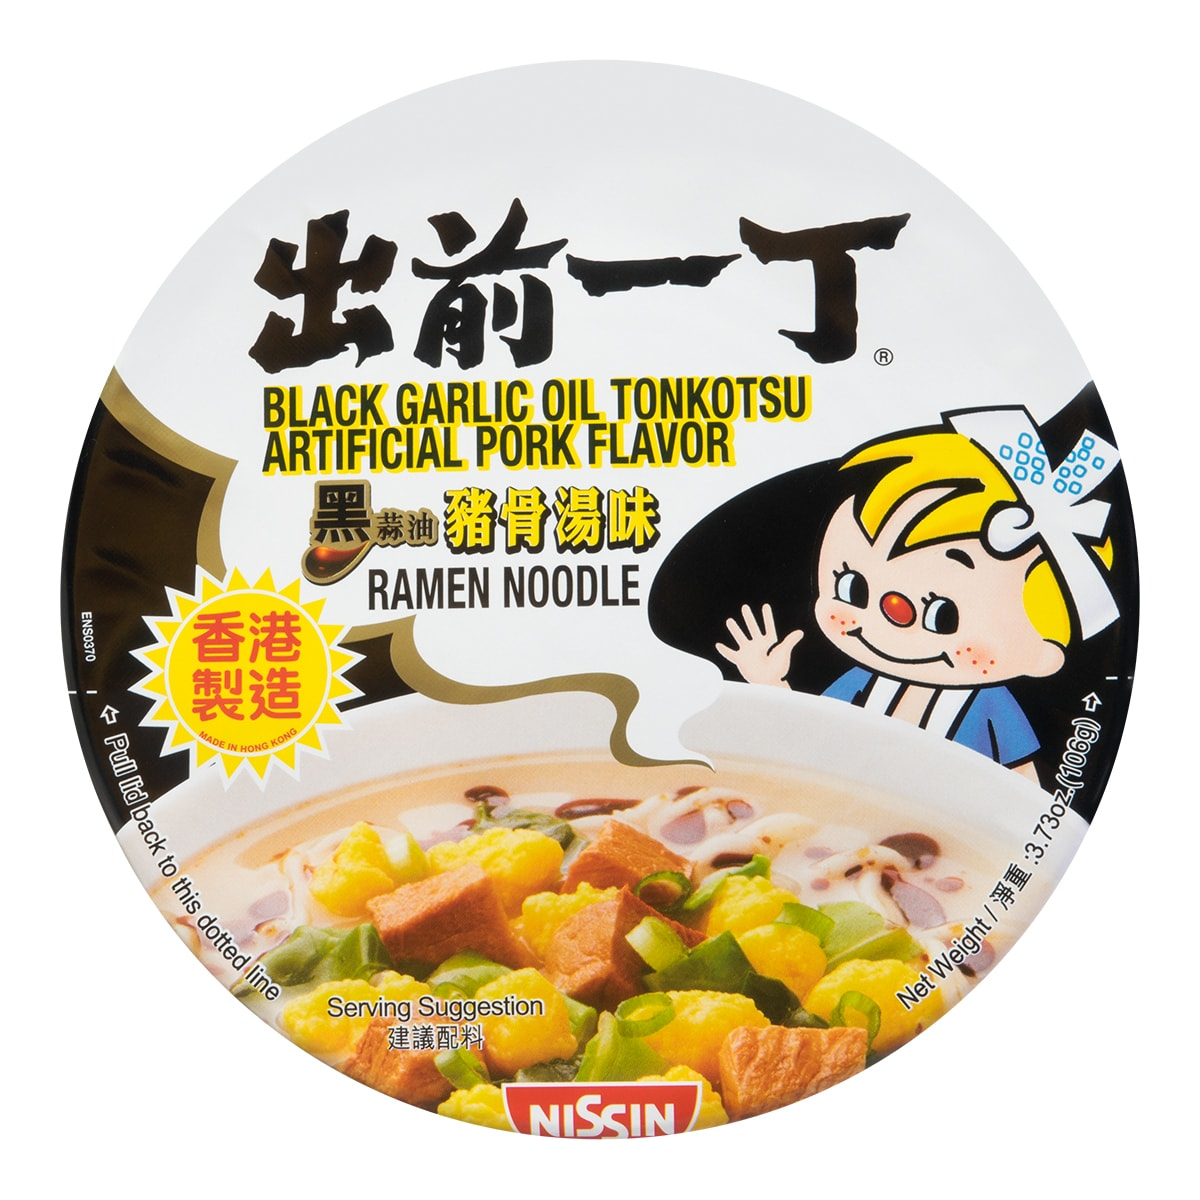 【Clearance】Demae Ramen Noodle With Black Garlic Oil Tonkotsu Pork Flavor 106g